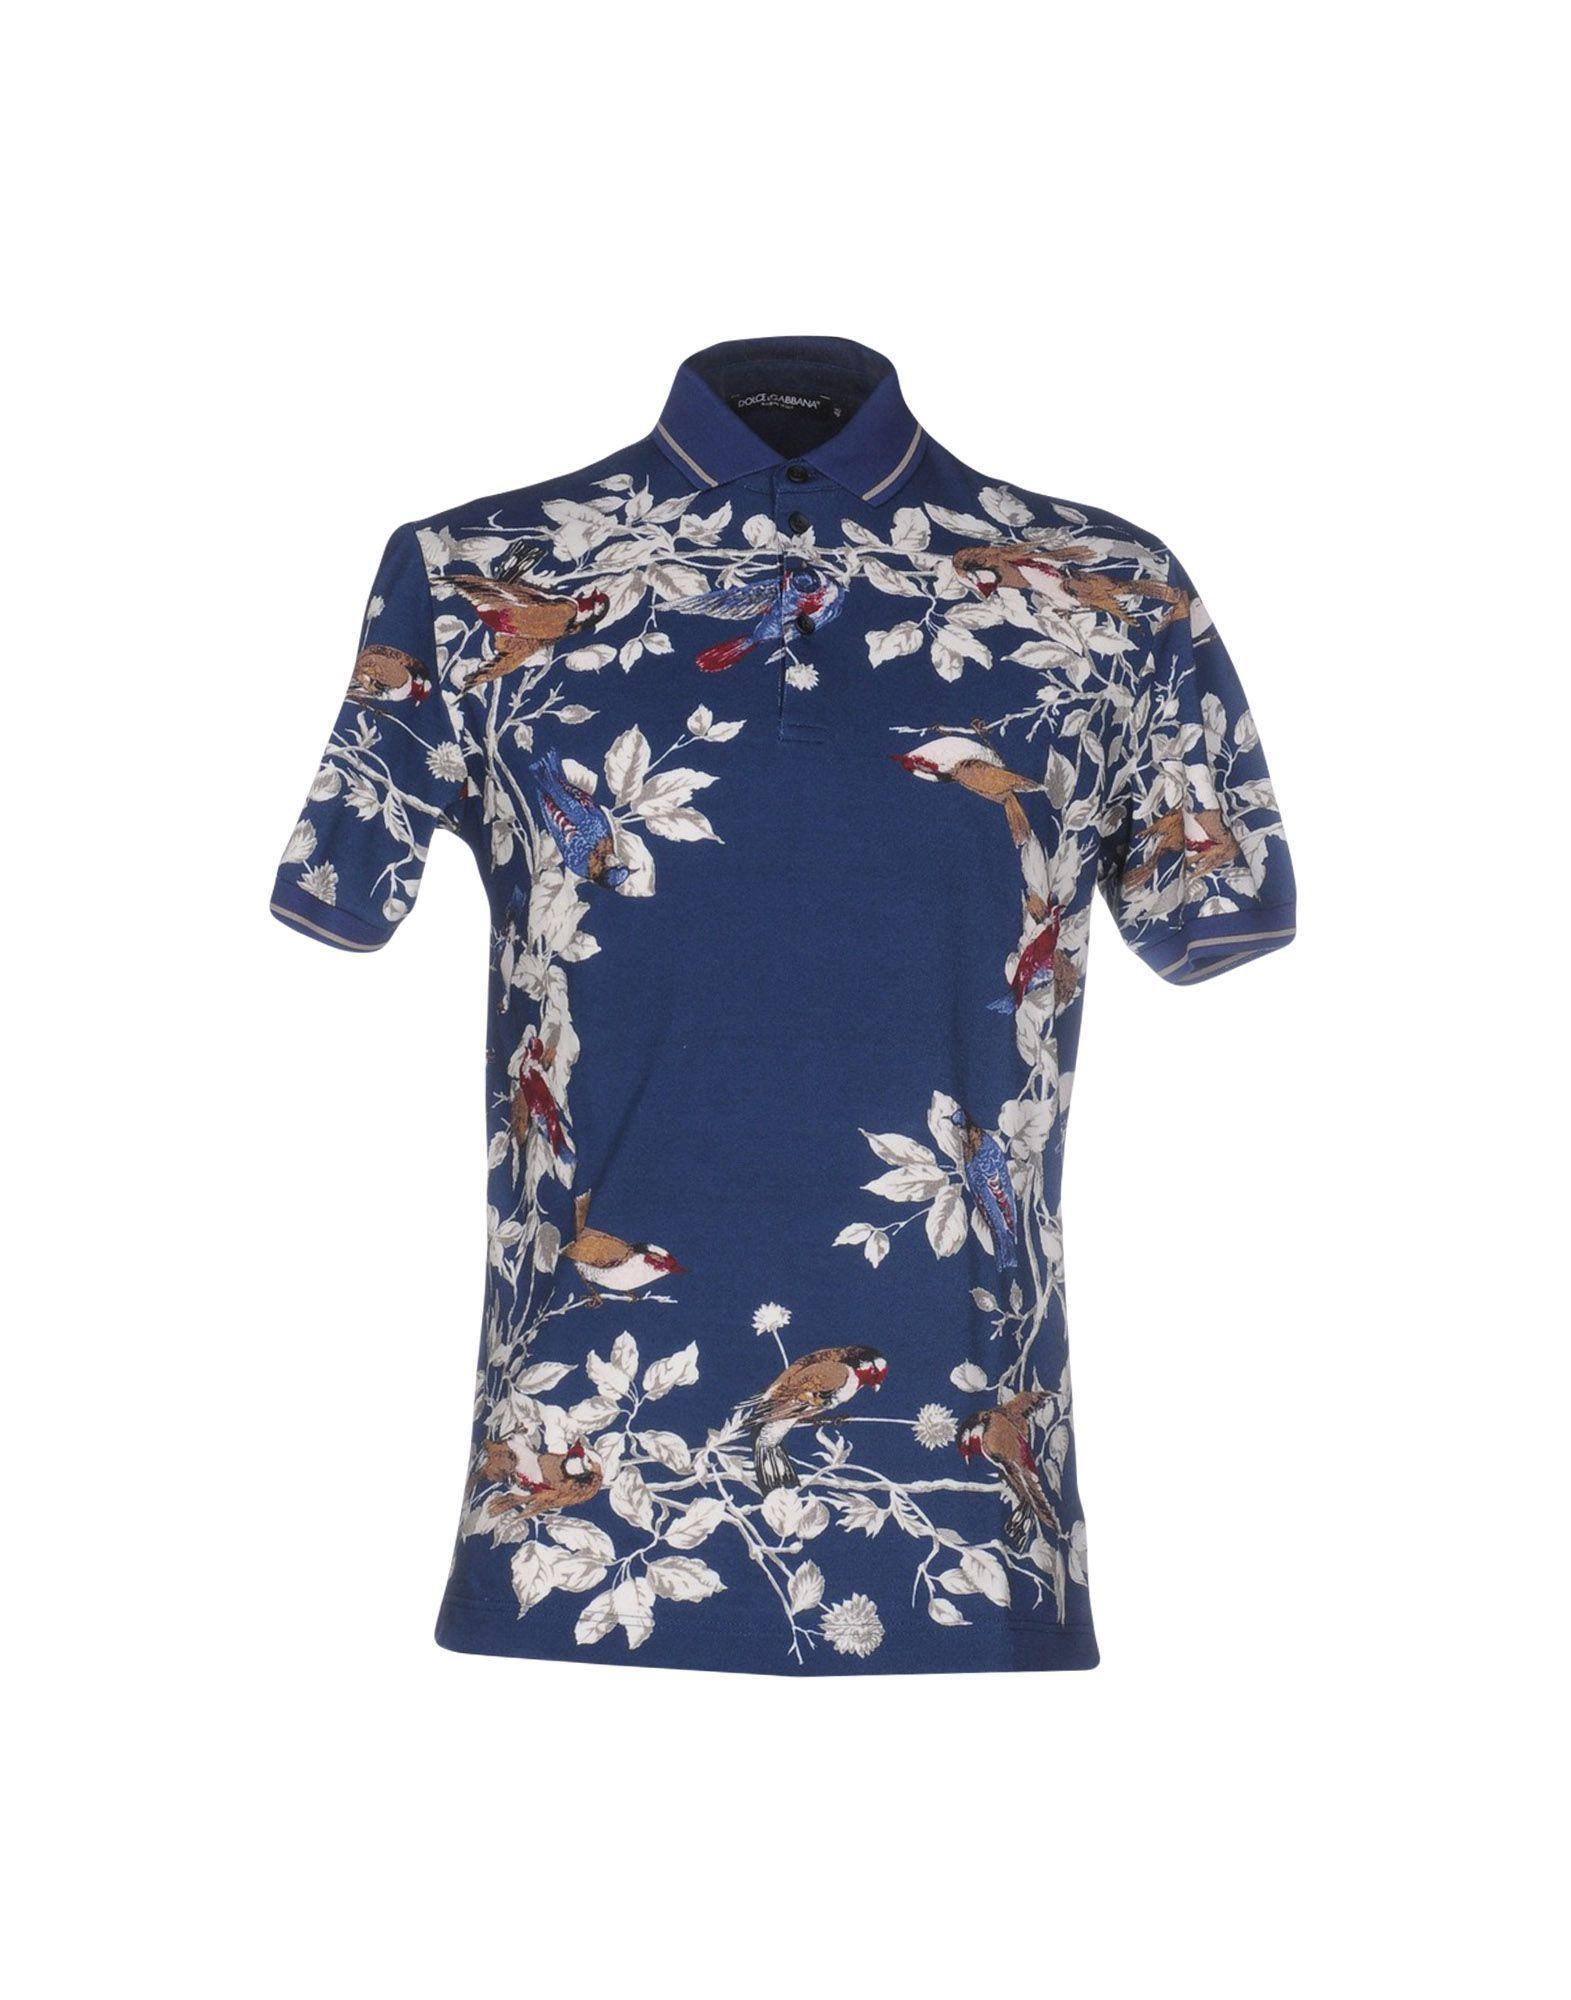 d163ce9c3 Lyst - Dolce & Gabbana Polo Shirt in Blue for Men